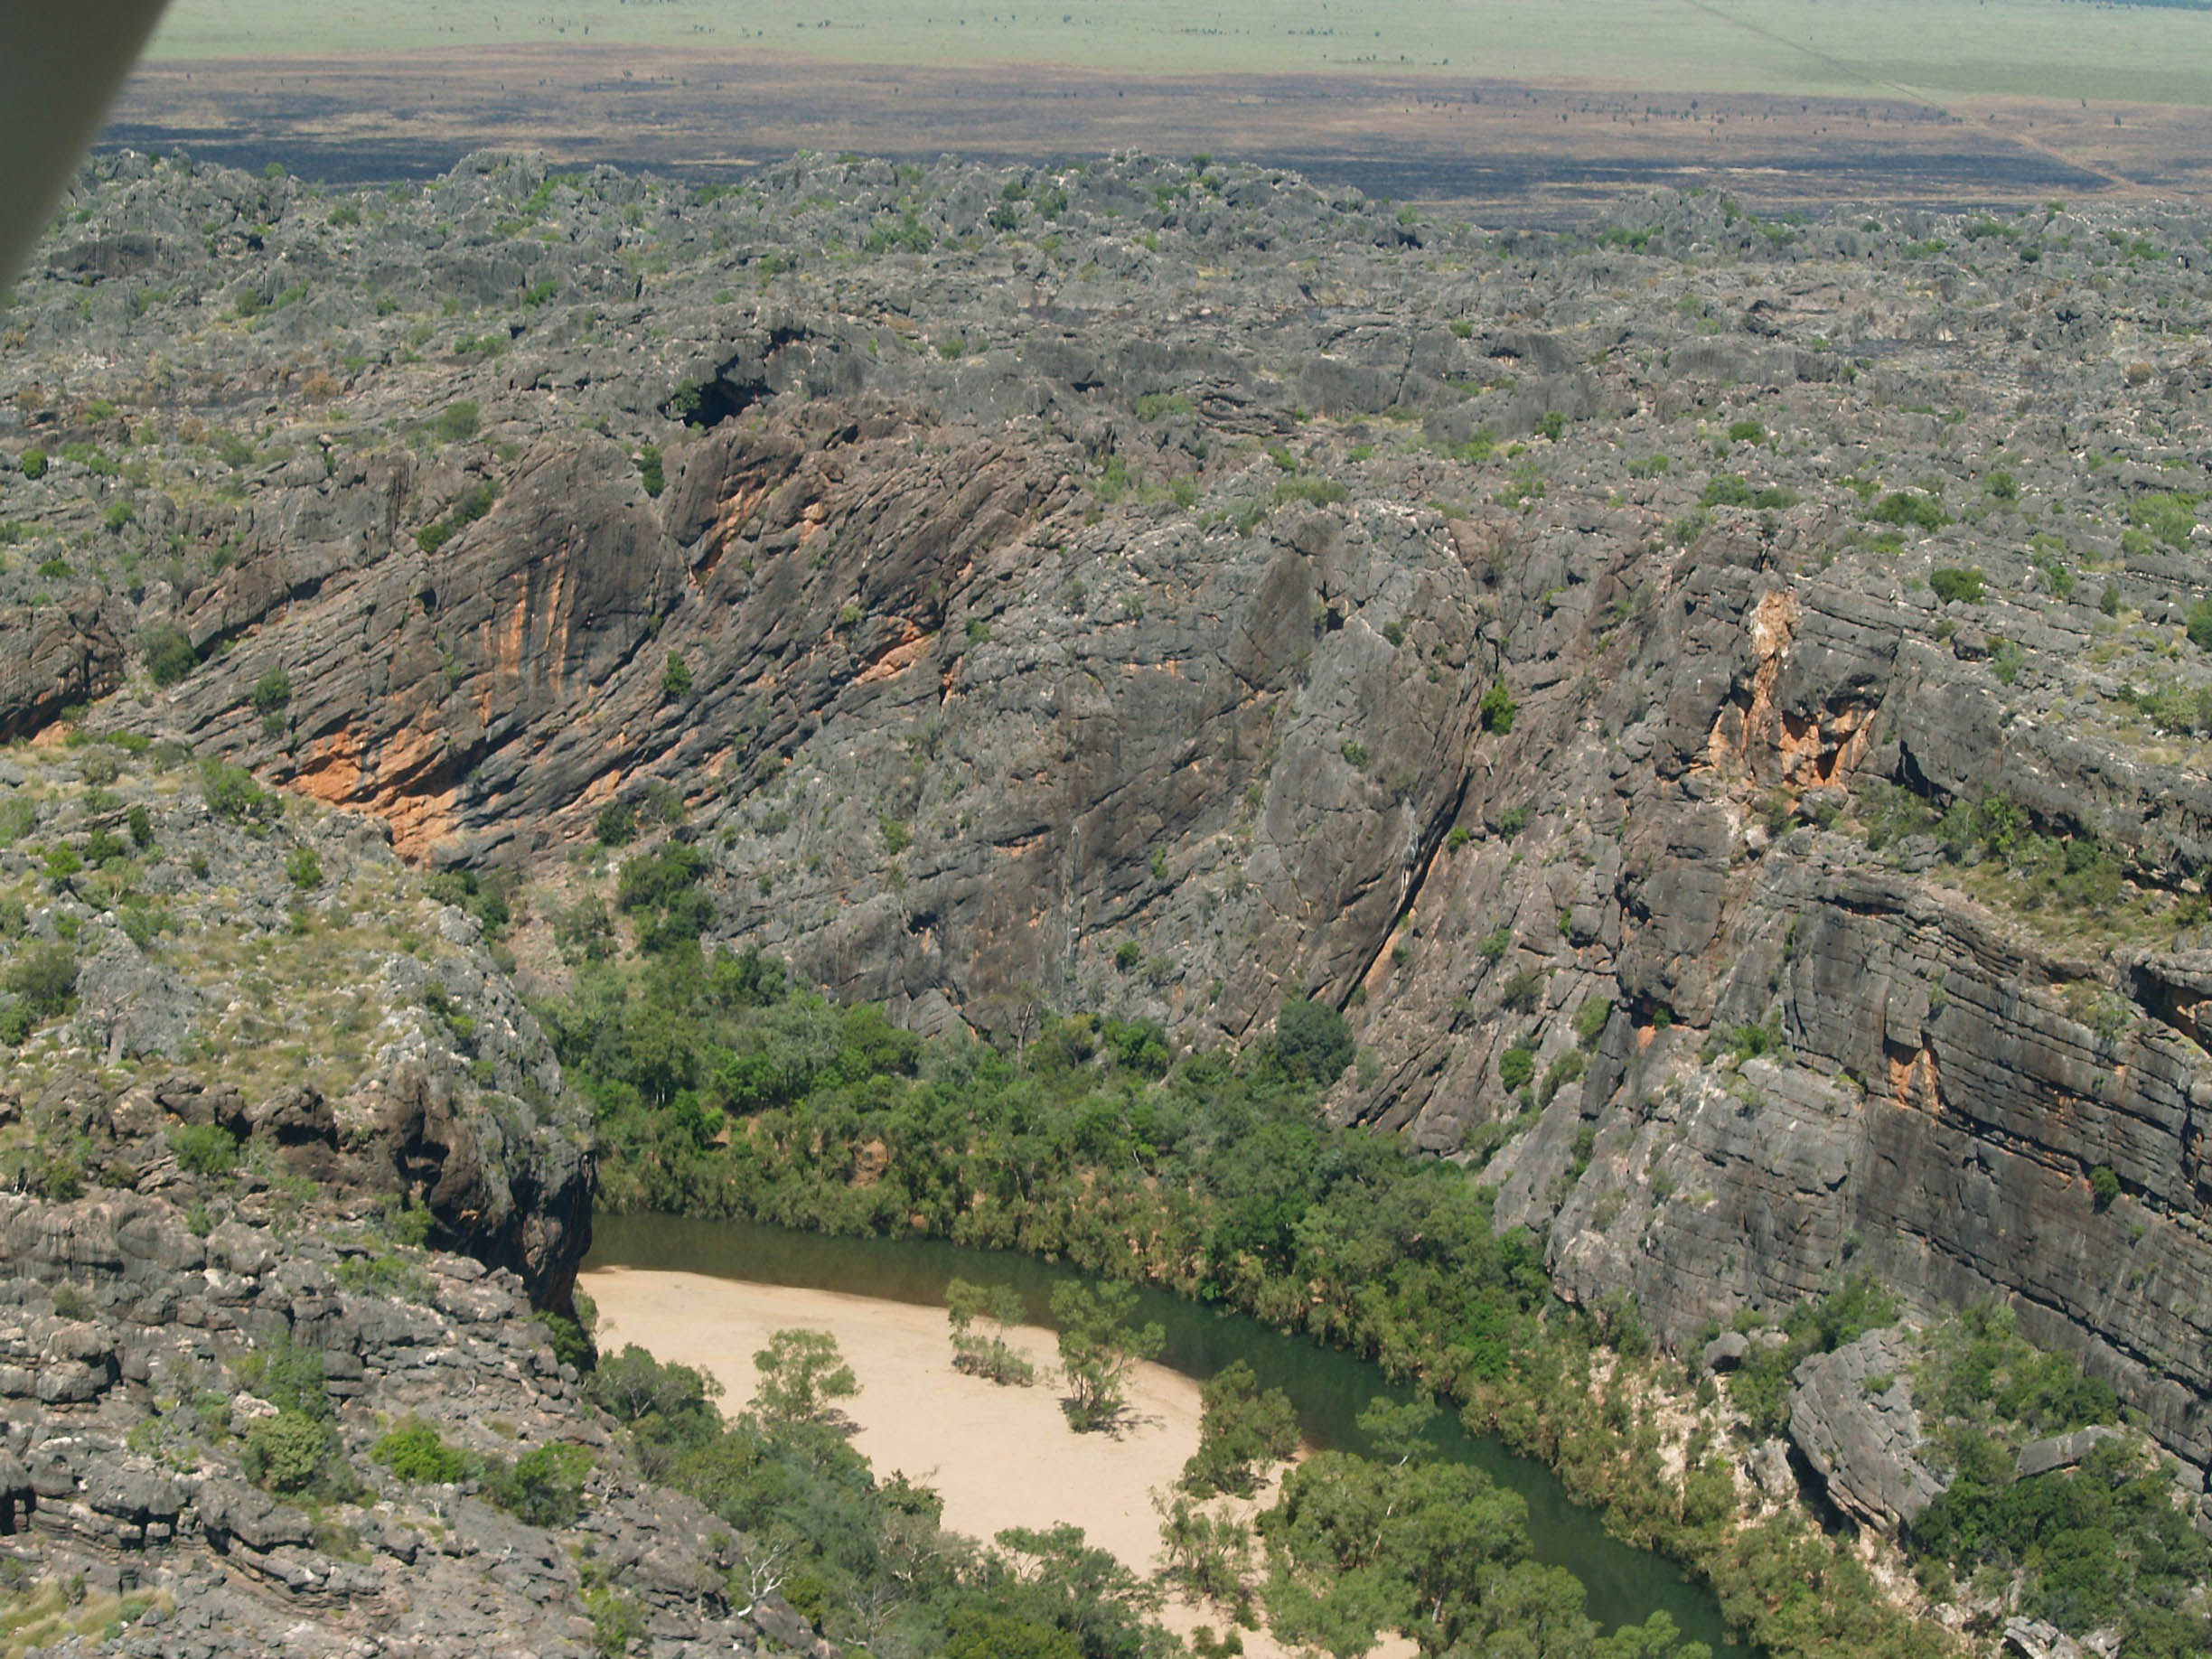 Napier Range, Pillara Limestone collapse scarp, reefal-slope and fore-reef at Windjana Gorge